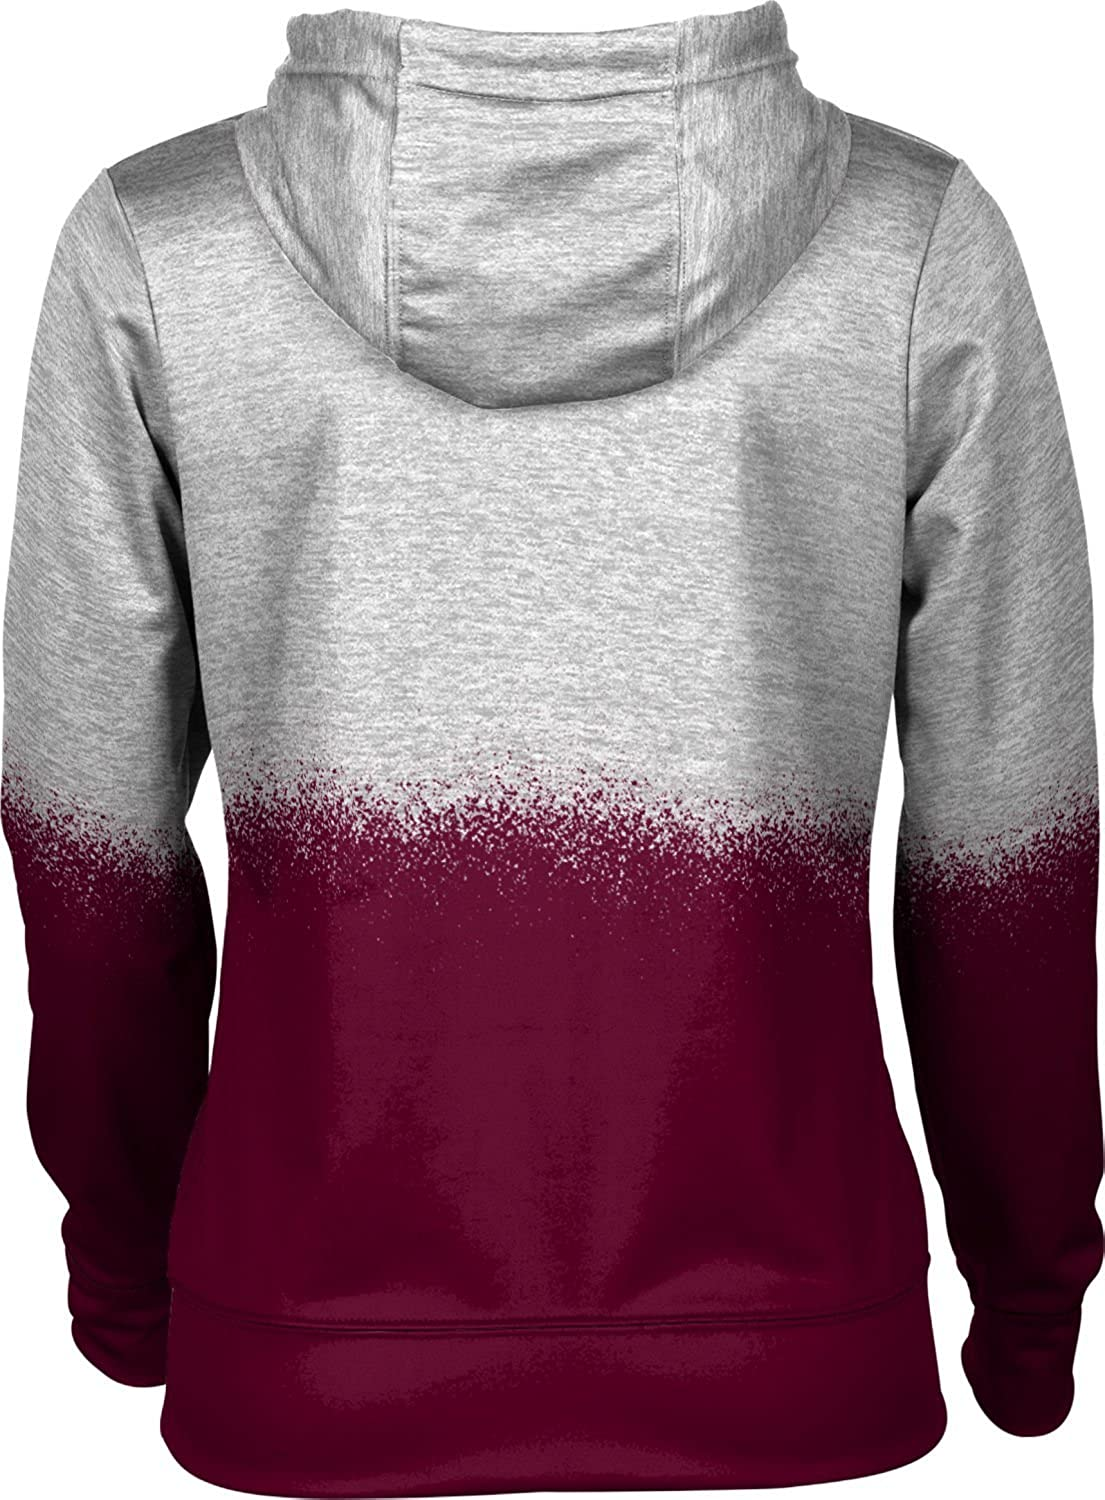 ProSphere University of Maryland Eastern Shore Girls Zipper Hoodie School Spirit Sweatshirt Spray Over